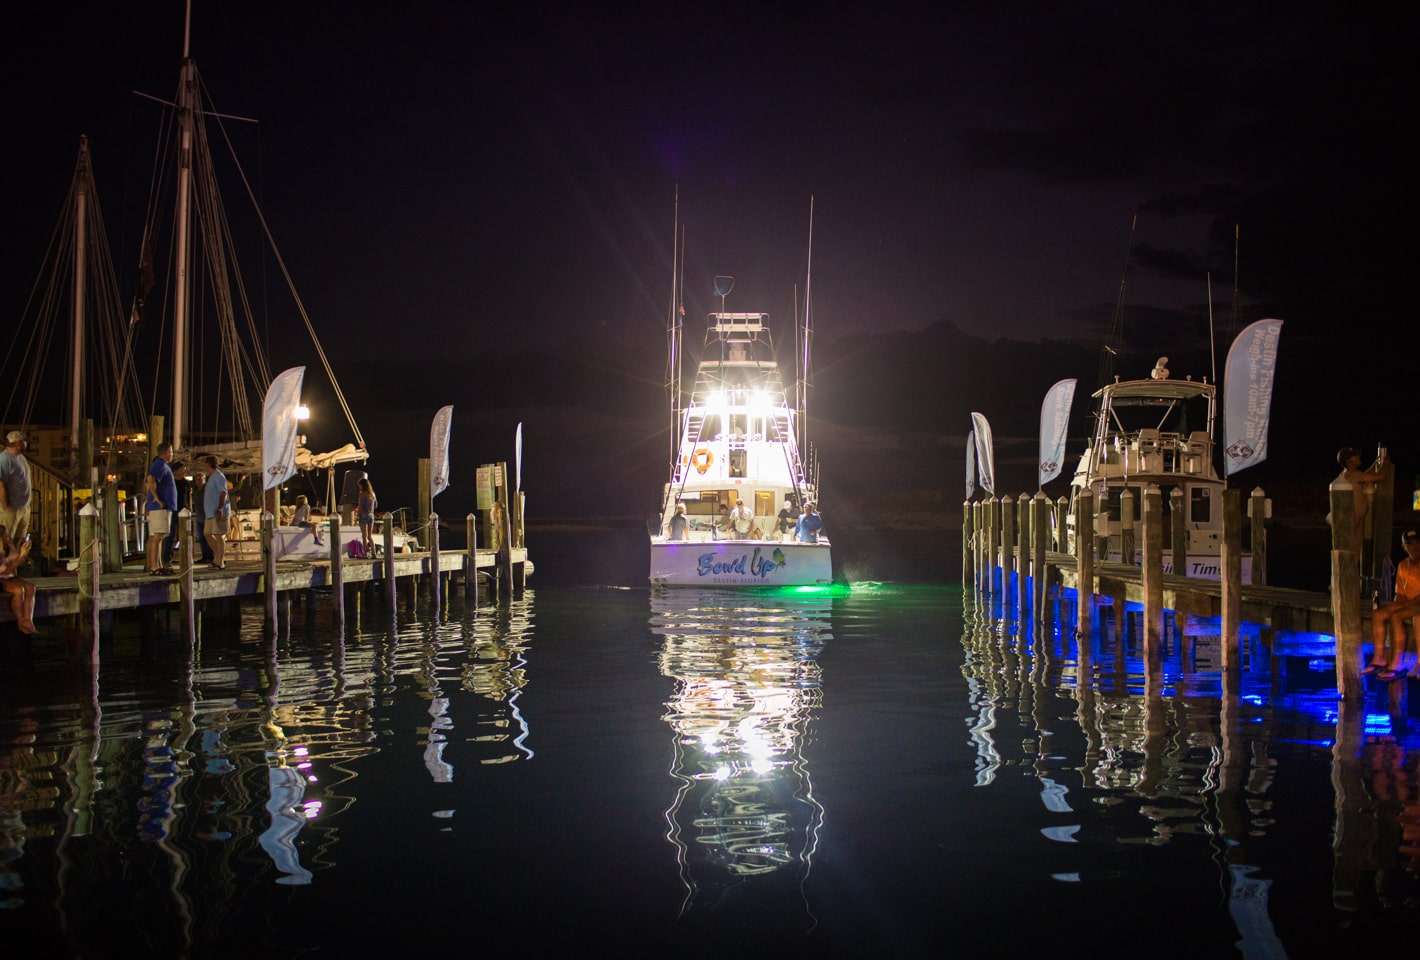 Fishing boat leaving Destin harbor at night